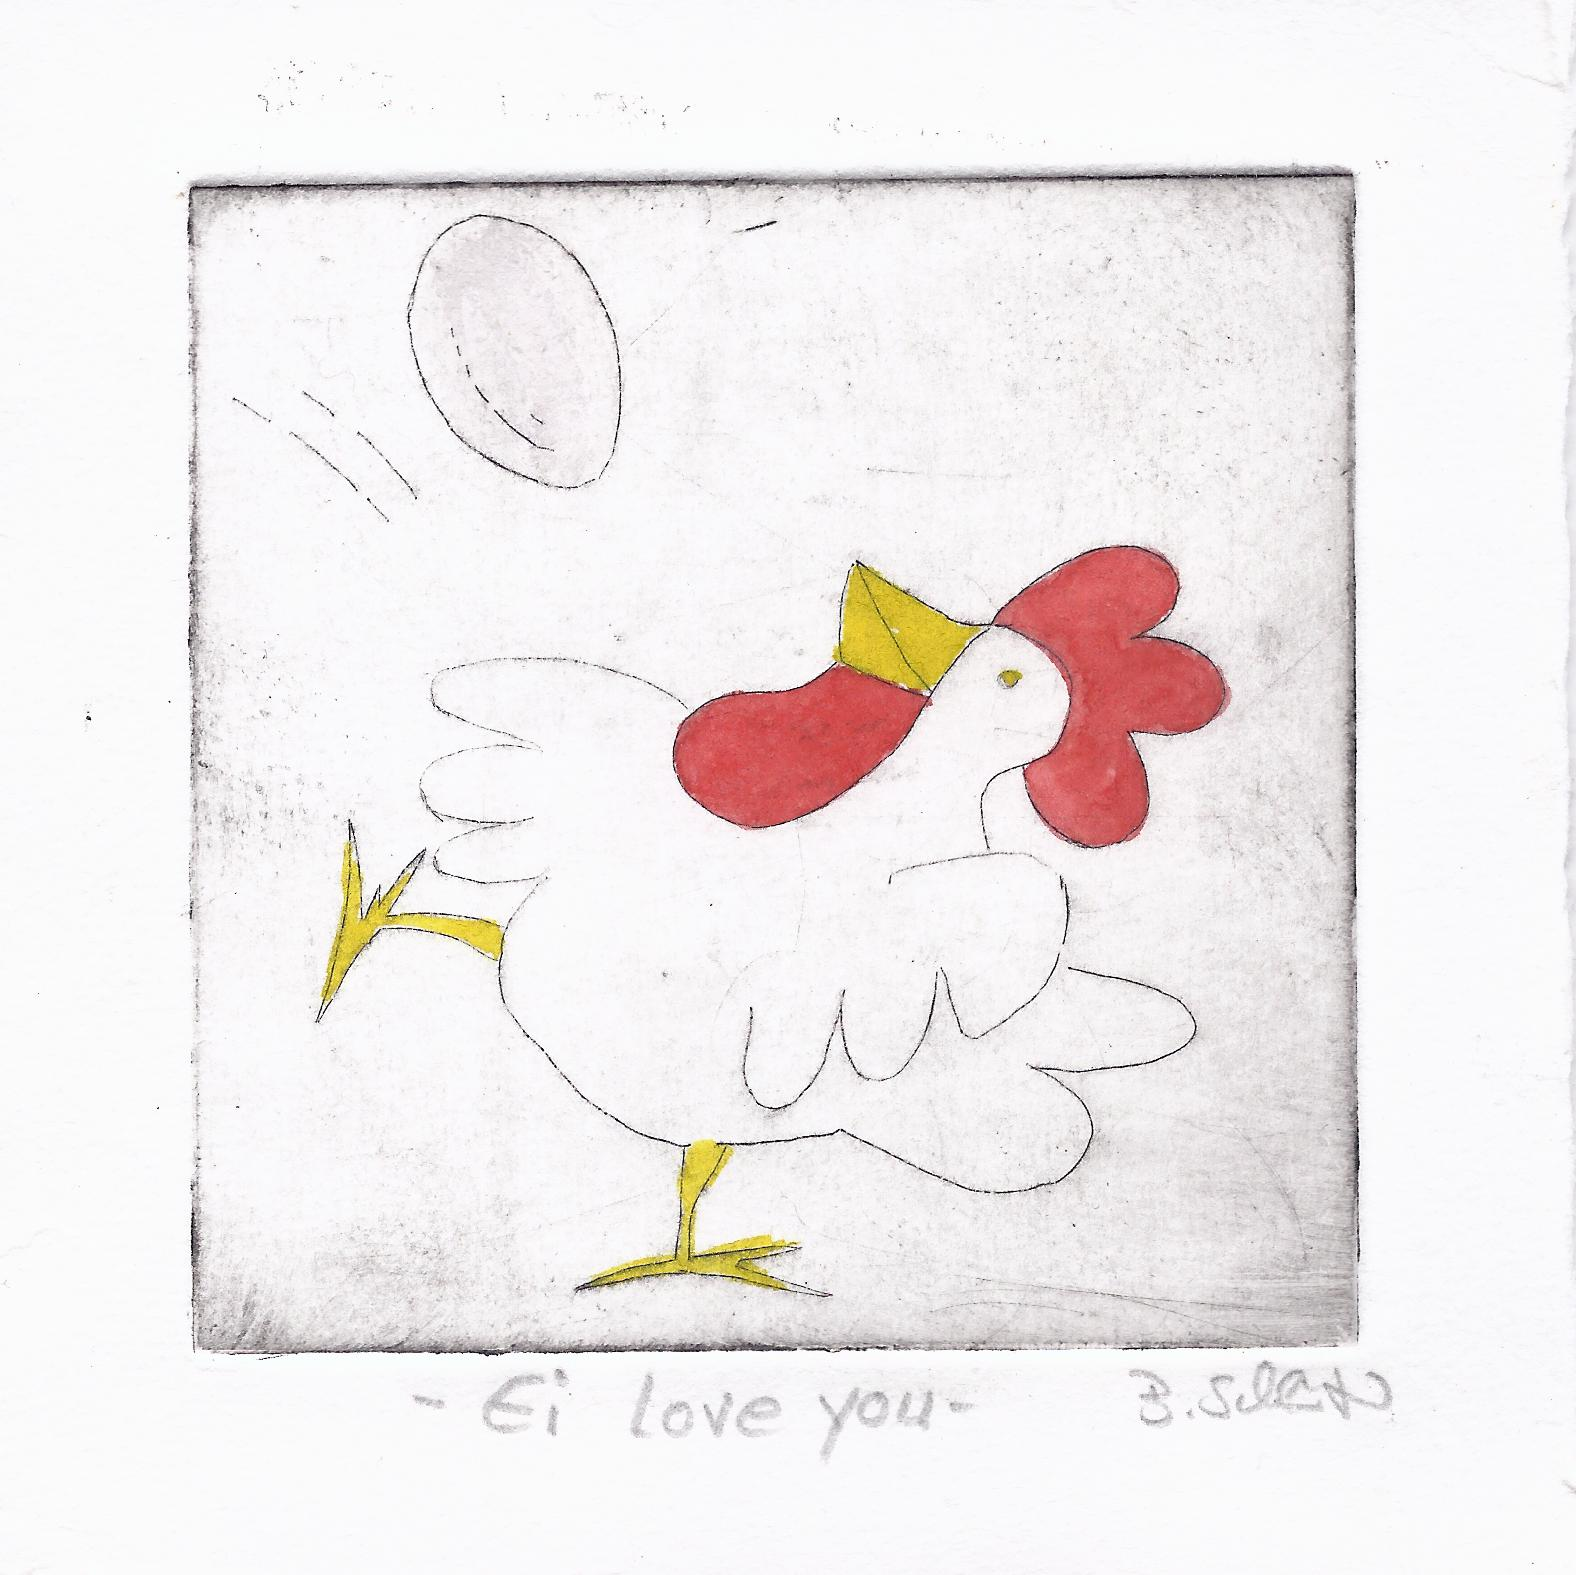 Huhn, Ei love you / Barbara Schlüter /